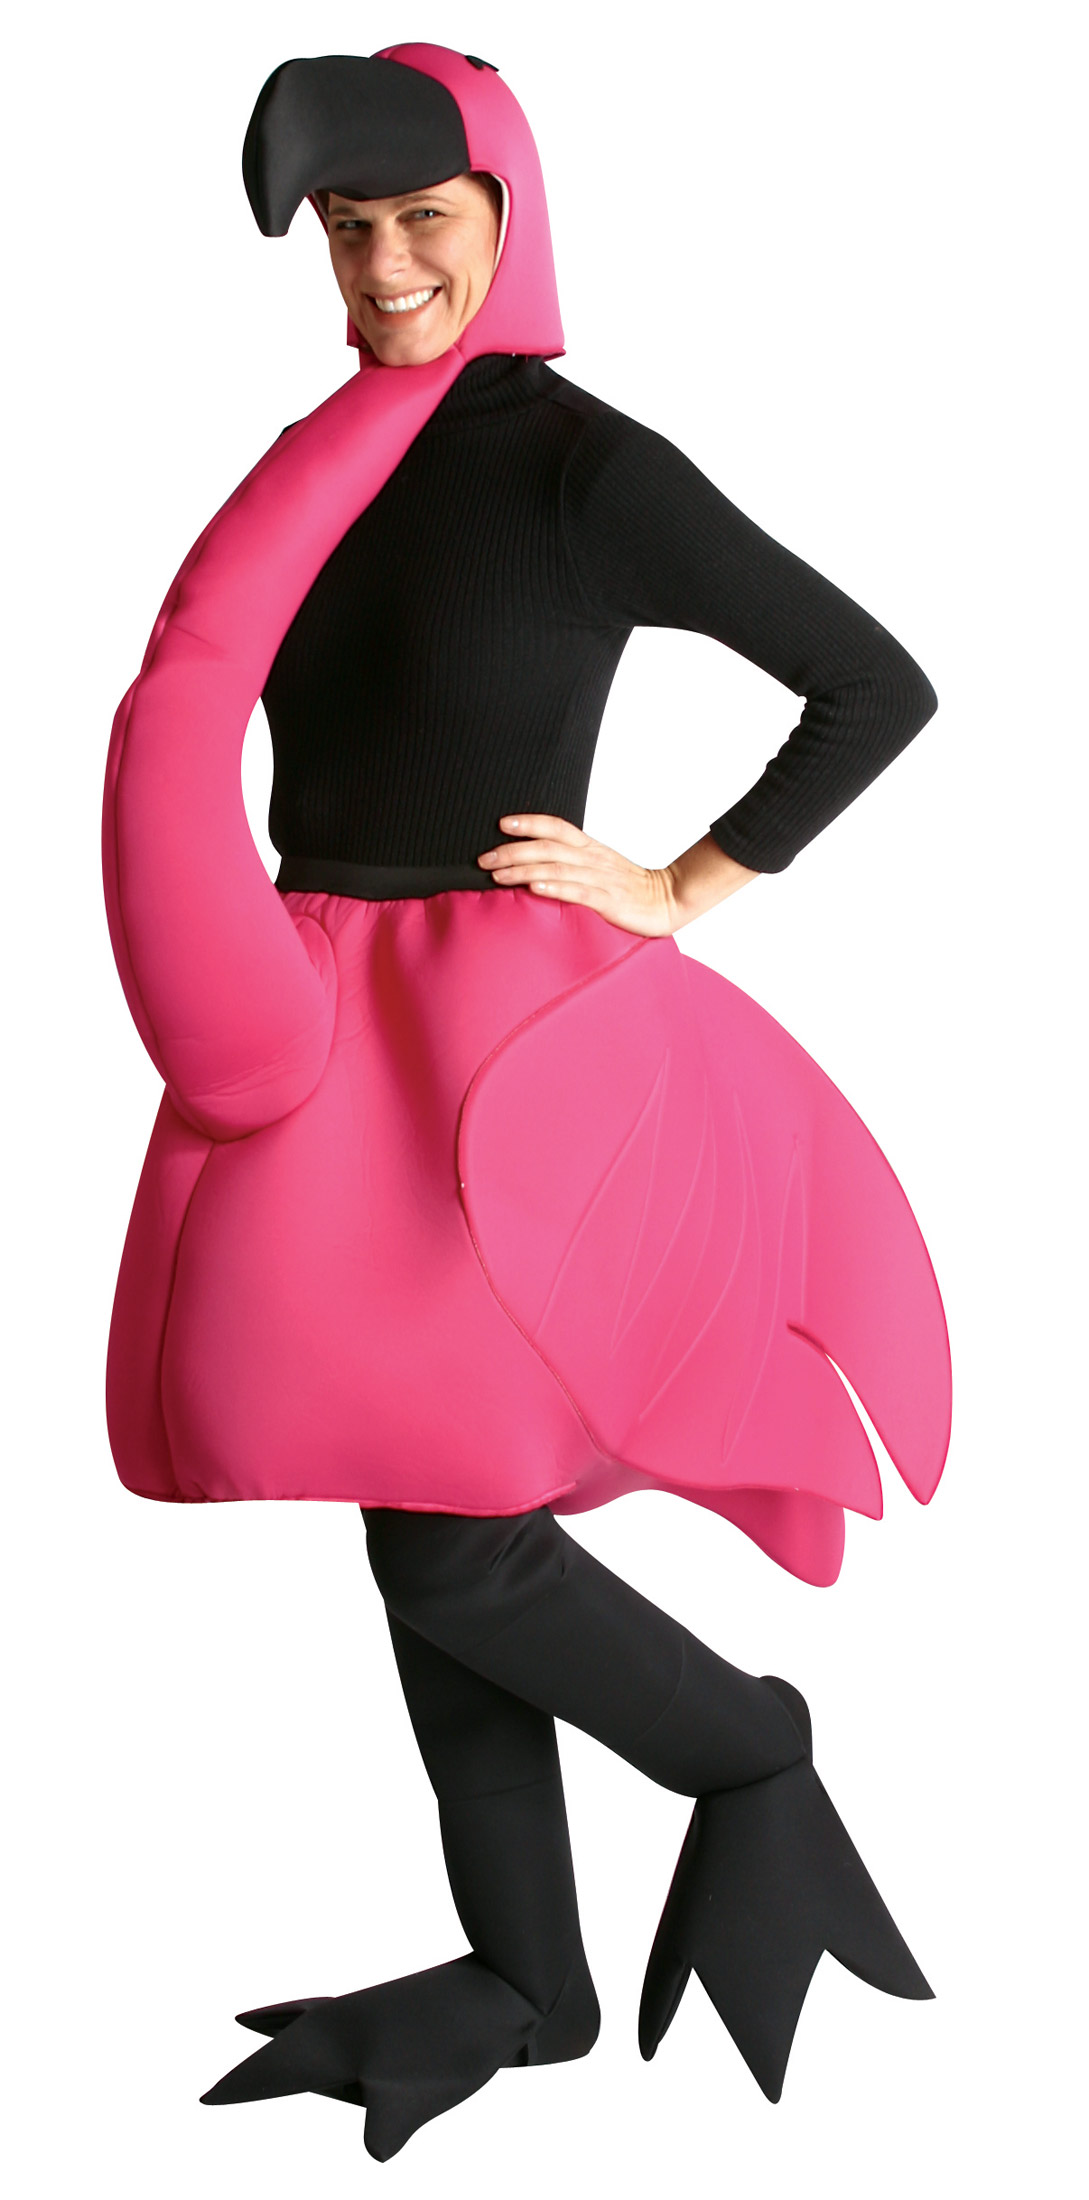 Déguisement flamand rose adulte - Costume oiseau original 2b7492473832